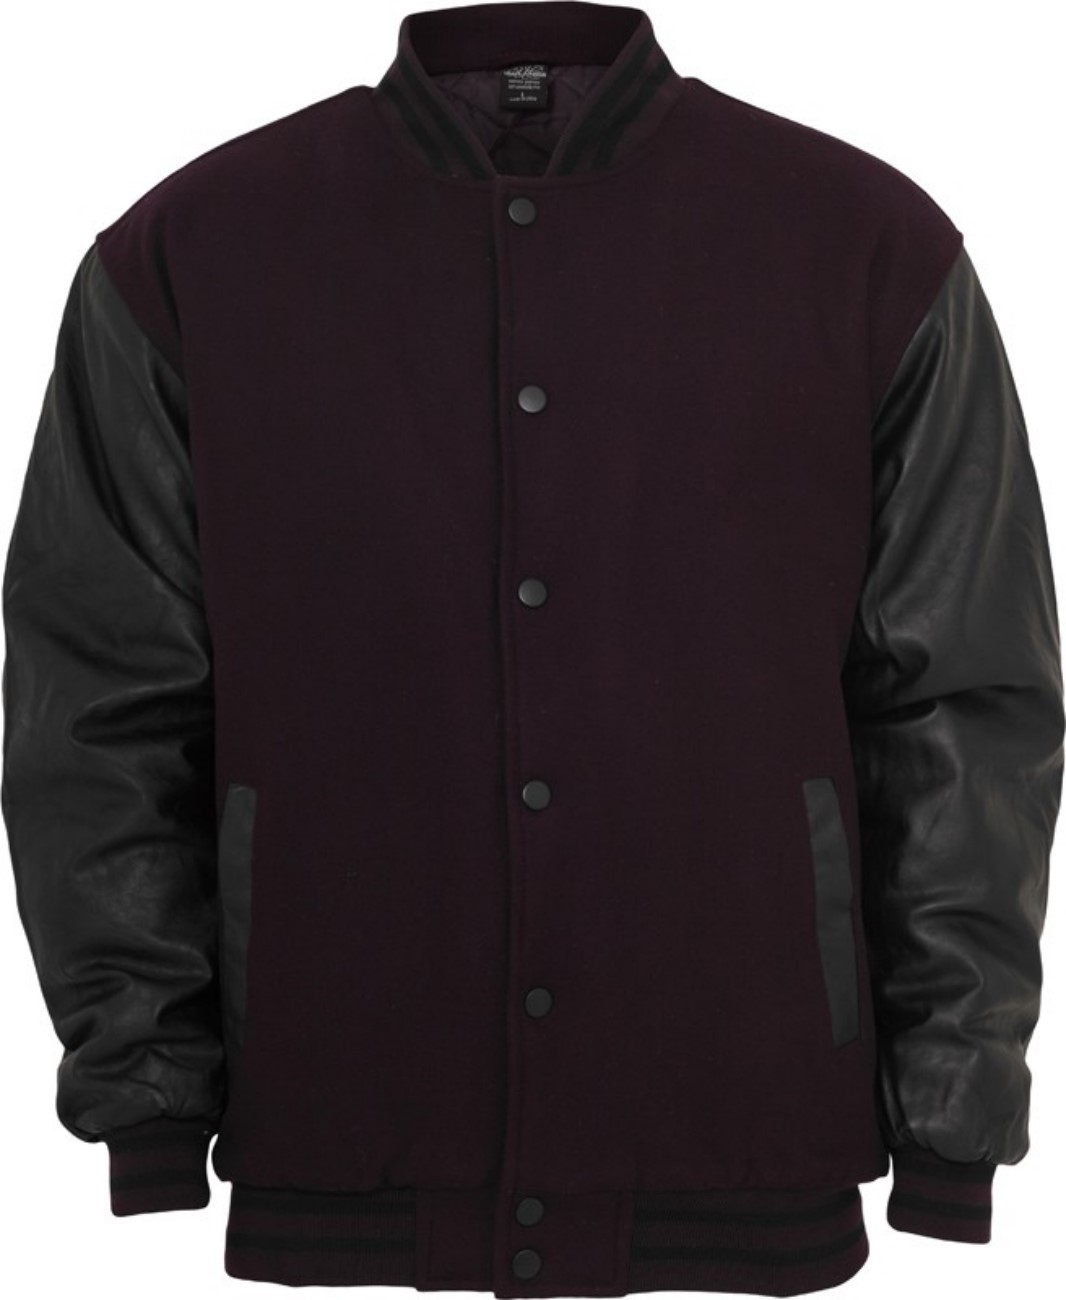 Urban Classics Herren Half-Leather College Jacke